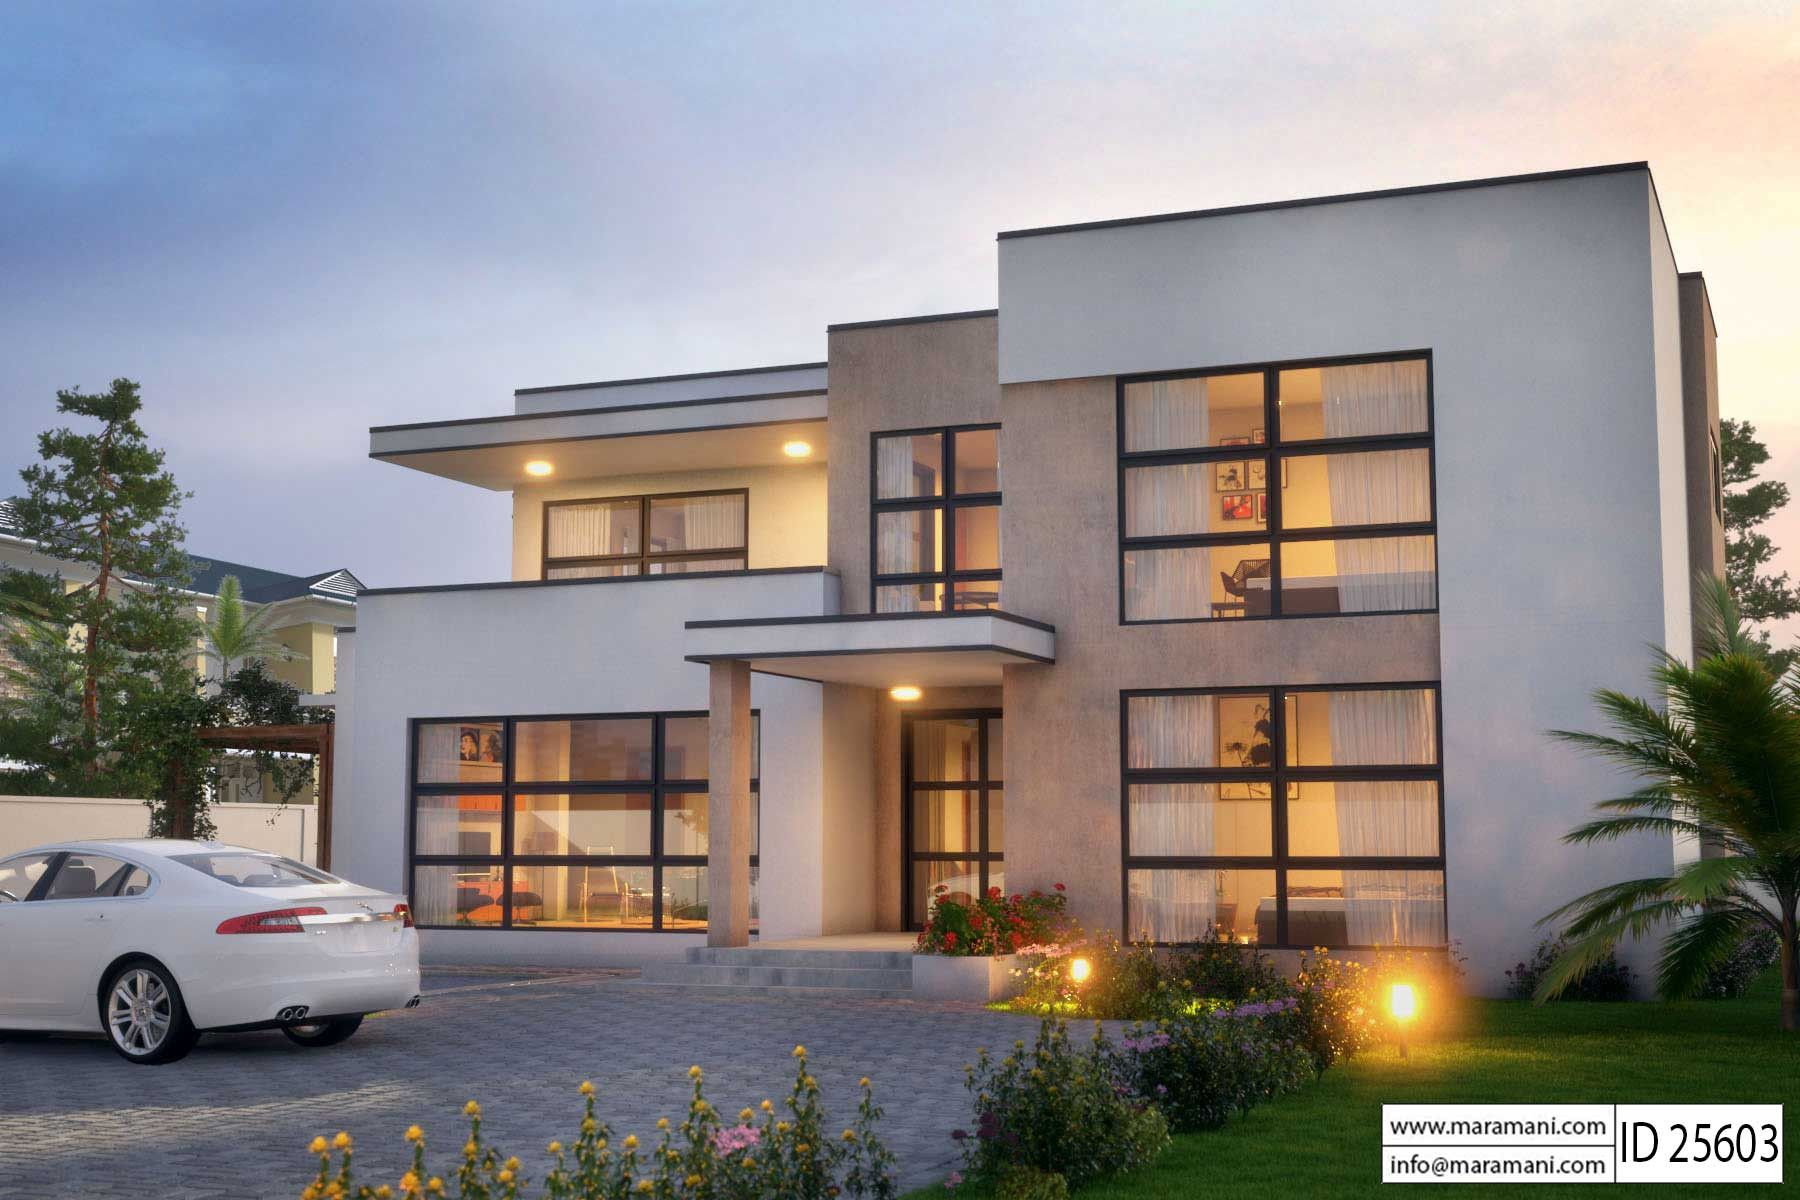 5 Bedroom House Design Id 25603 Big Modern Houses Modern House Floor Plans 5 Bedroom House Plans